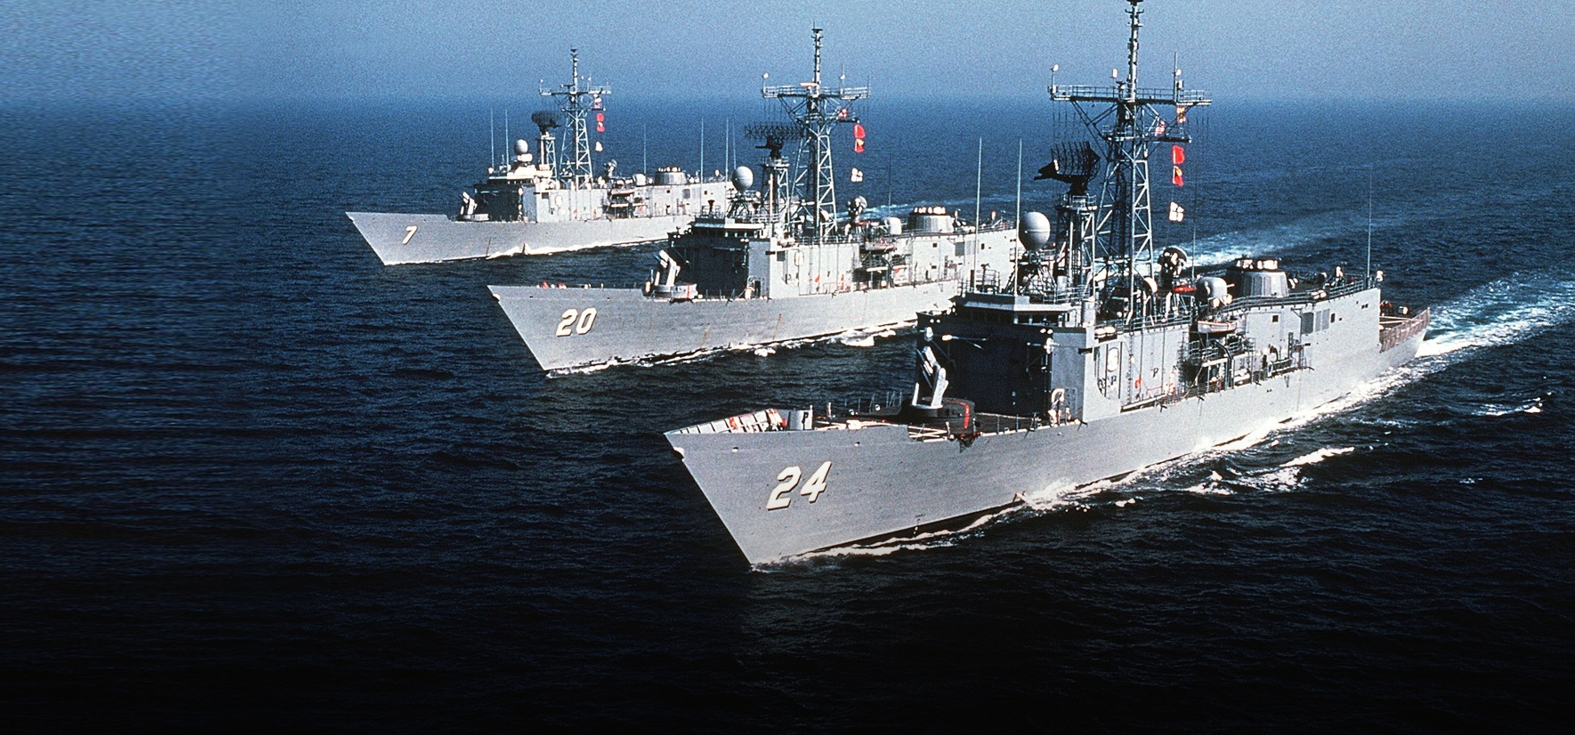 OLIVER HAZARD PERRY CLASS FRIGATE